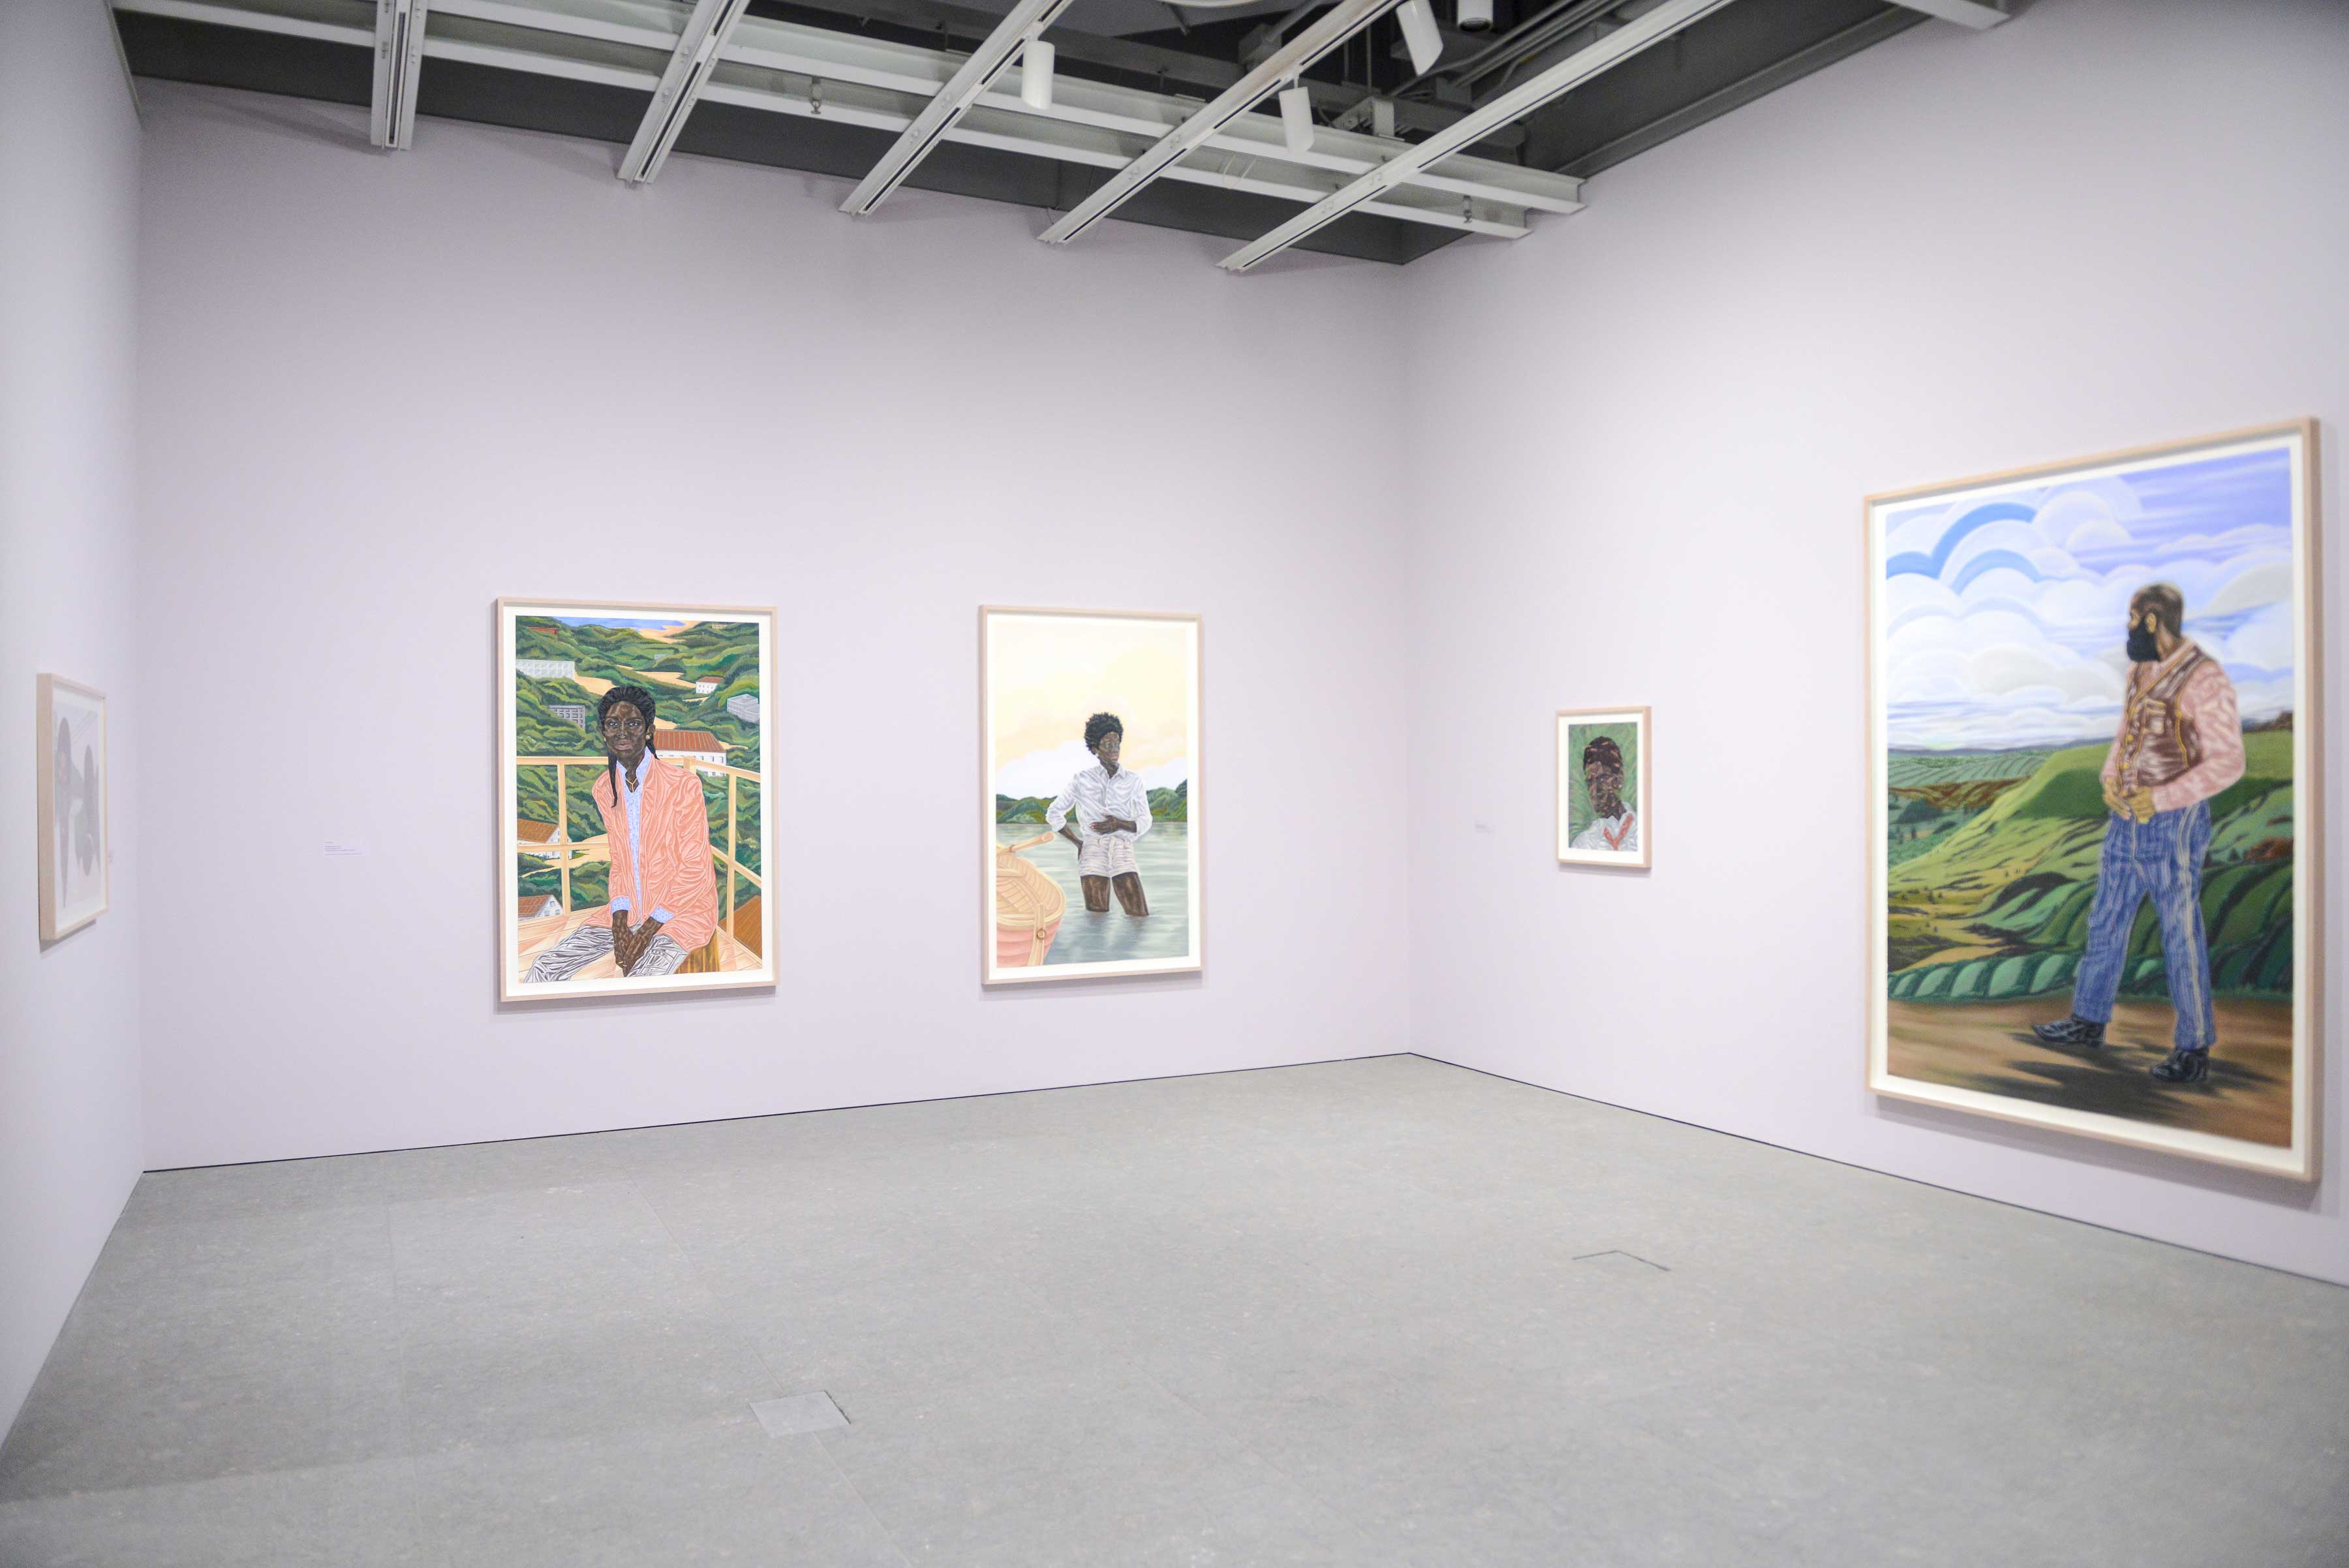 Toyin Ojih Odutola: To Wander Determined